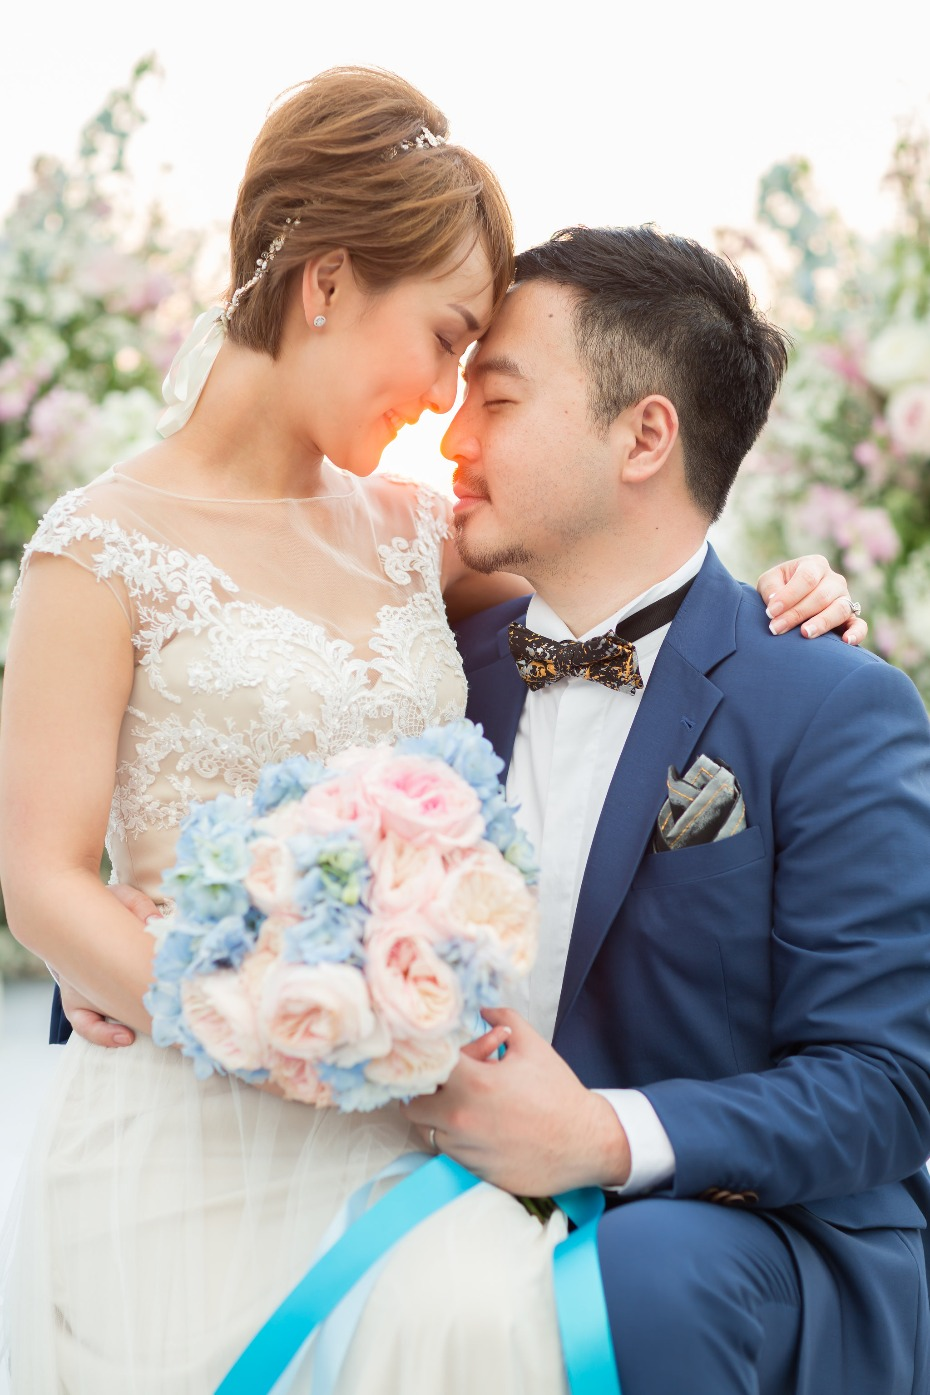 Romantic destination wedding in Thailand